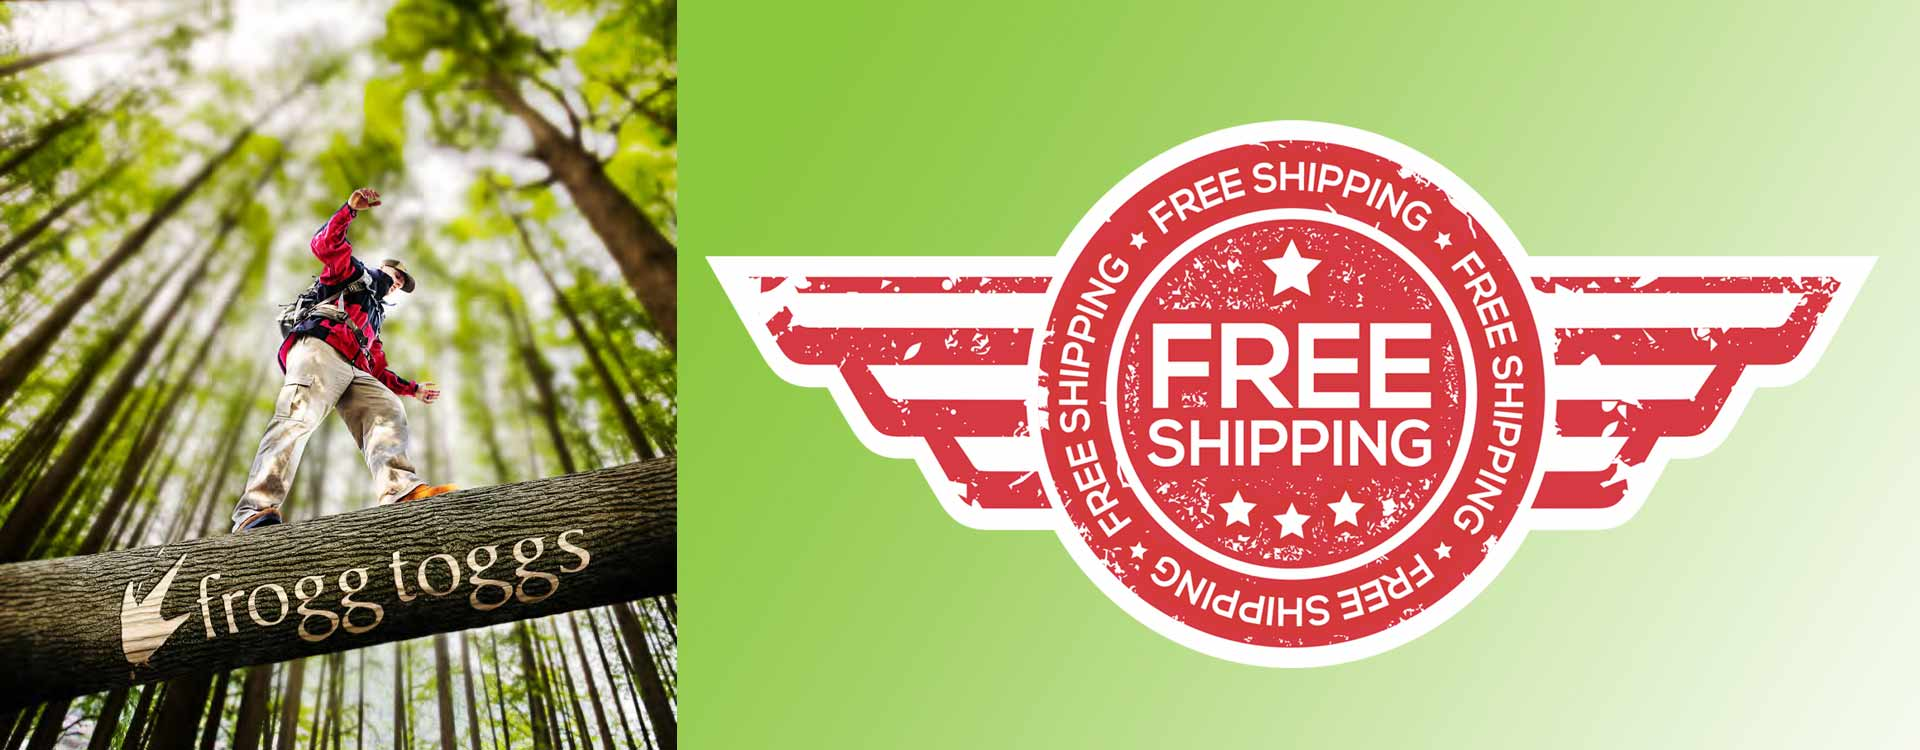 Free shipping on Frogg Toggs